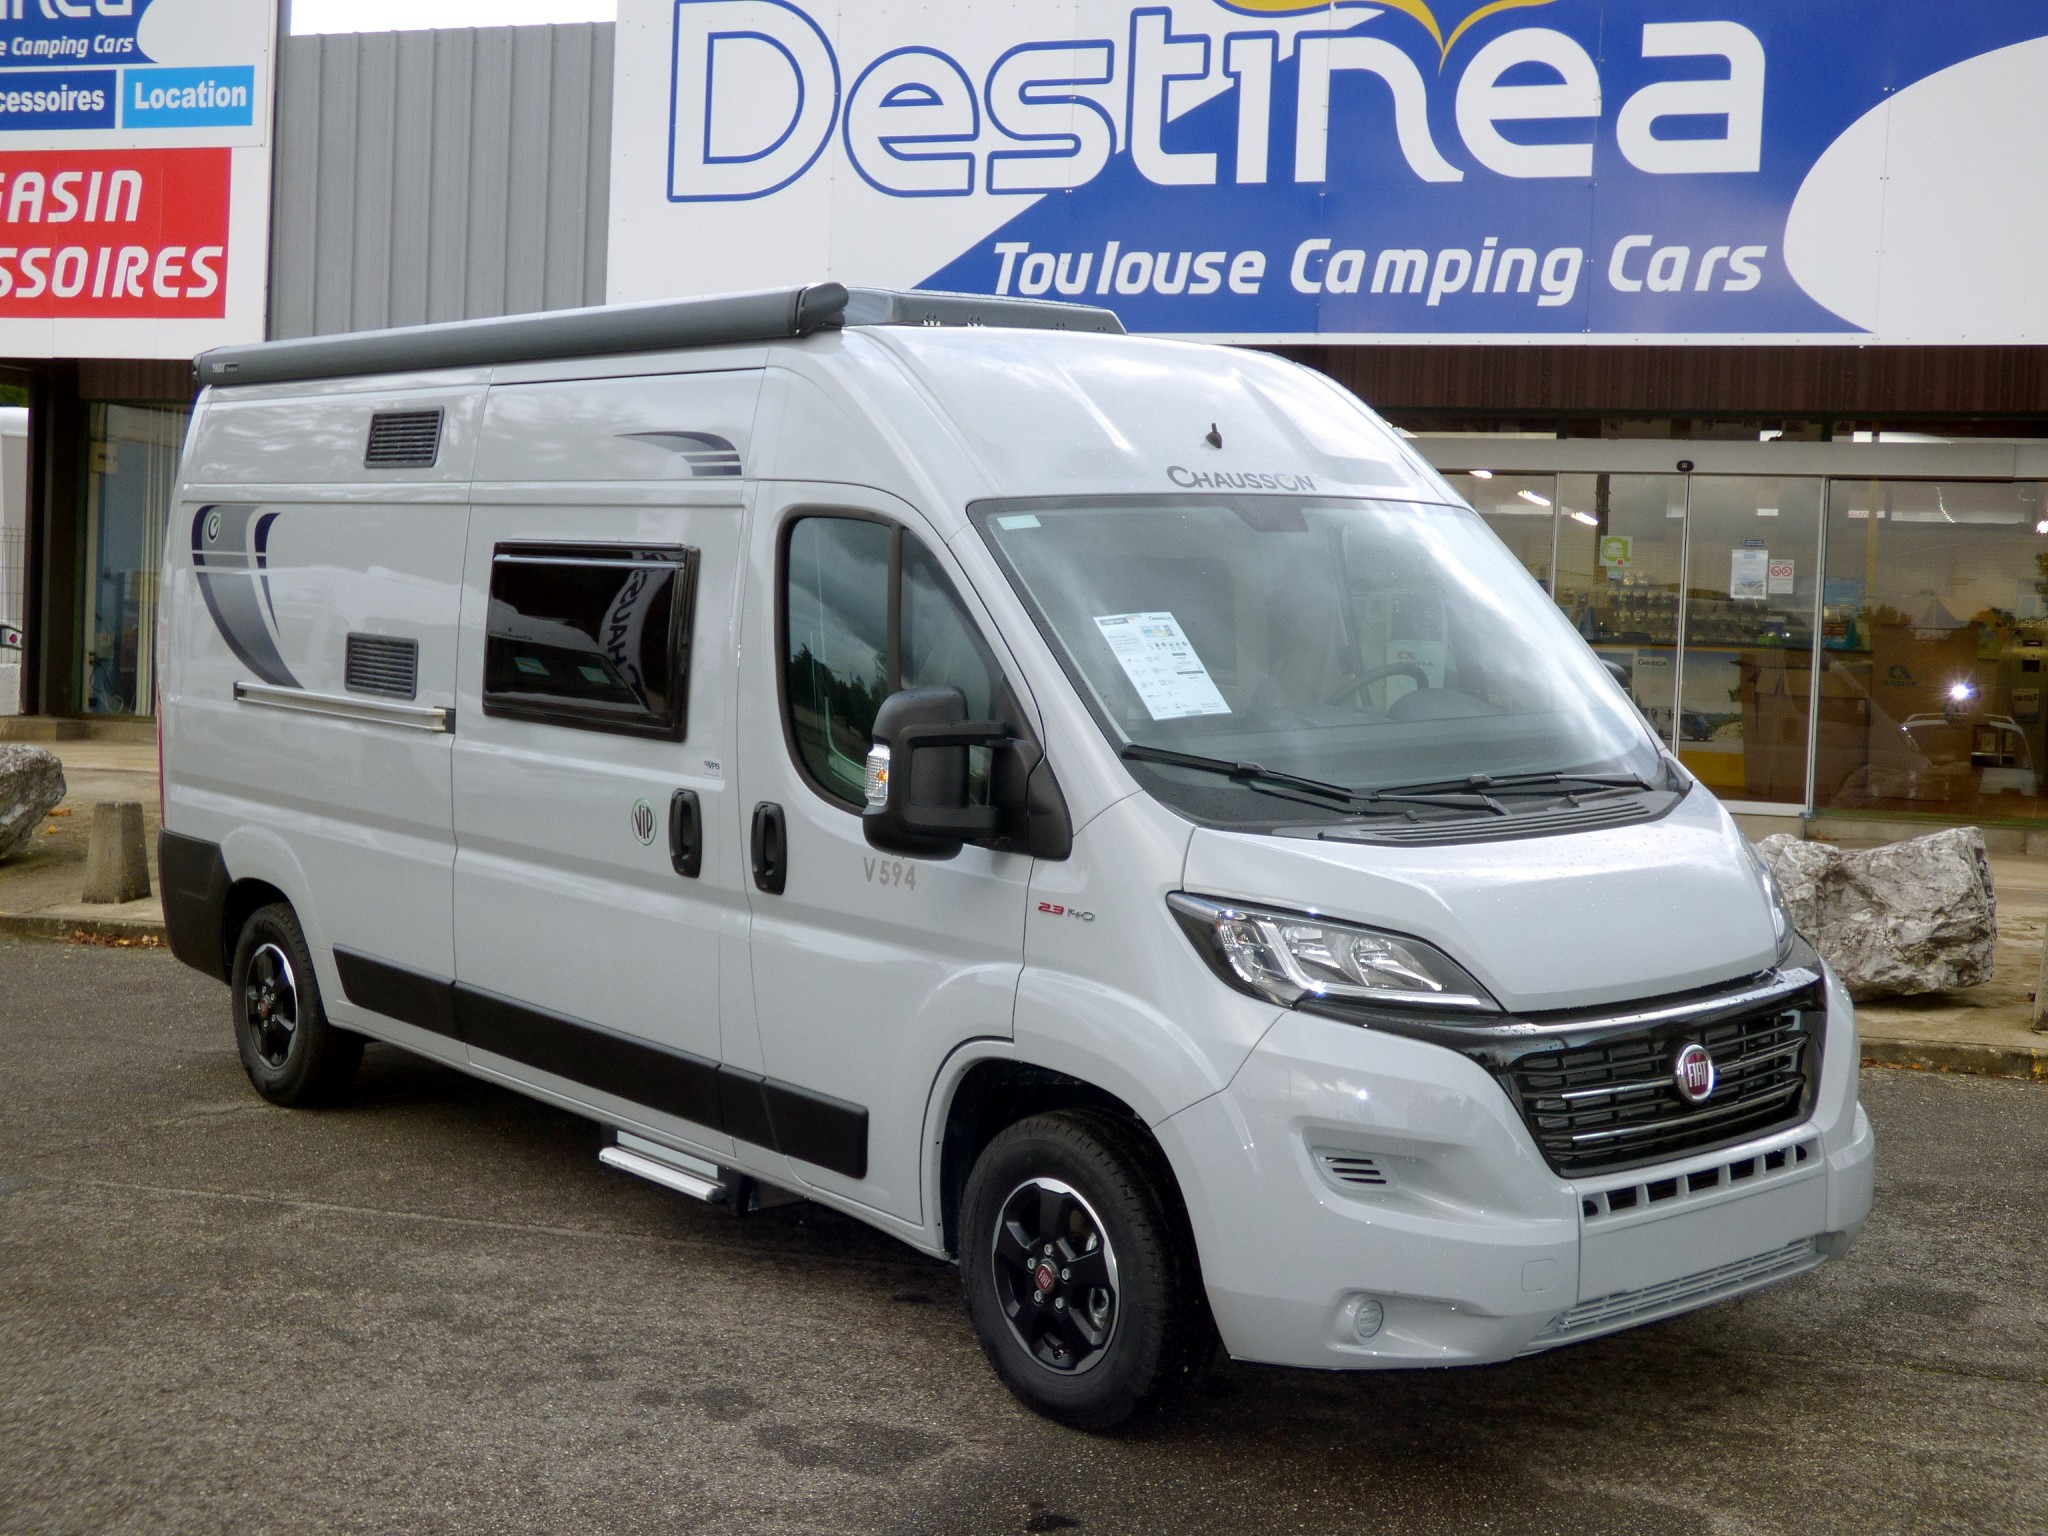 Camping-car CHAUSSON TWIST V594